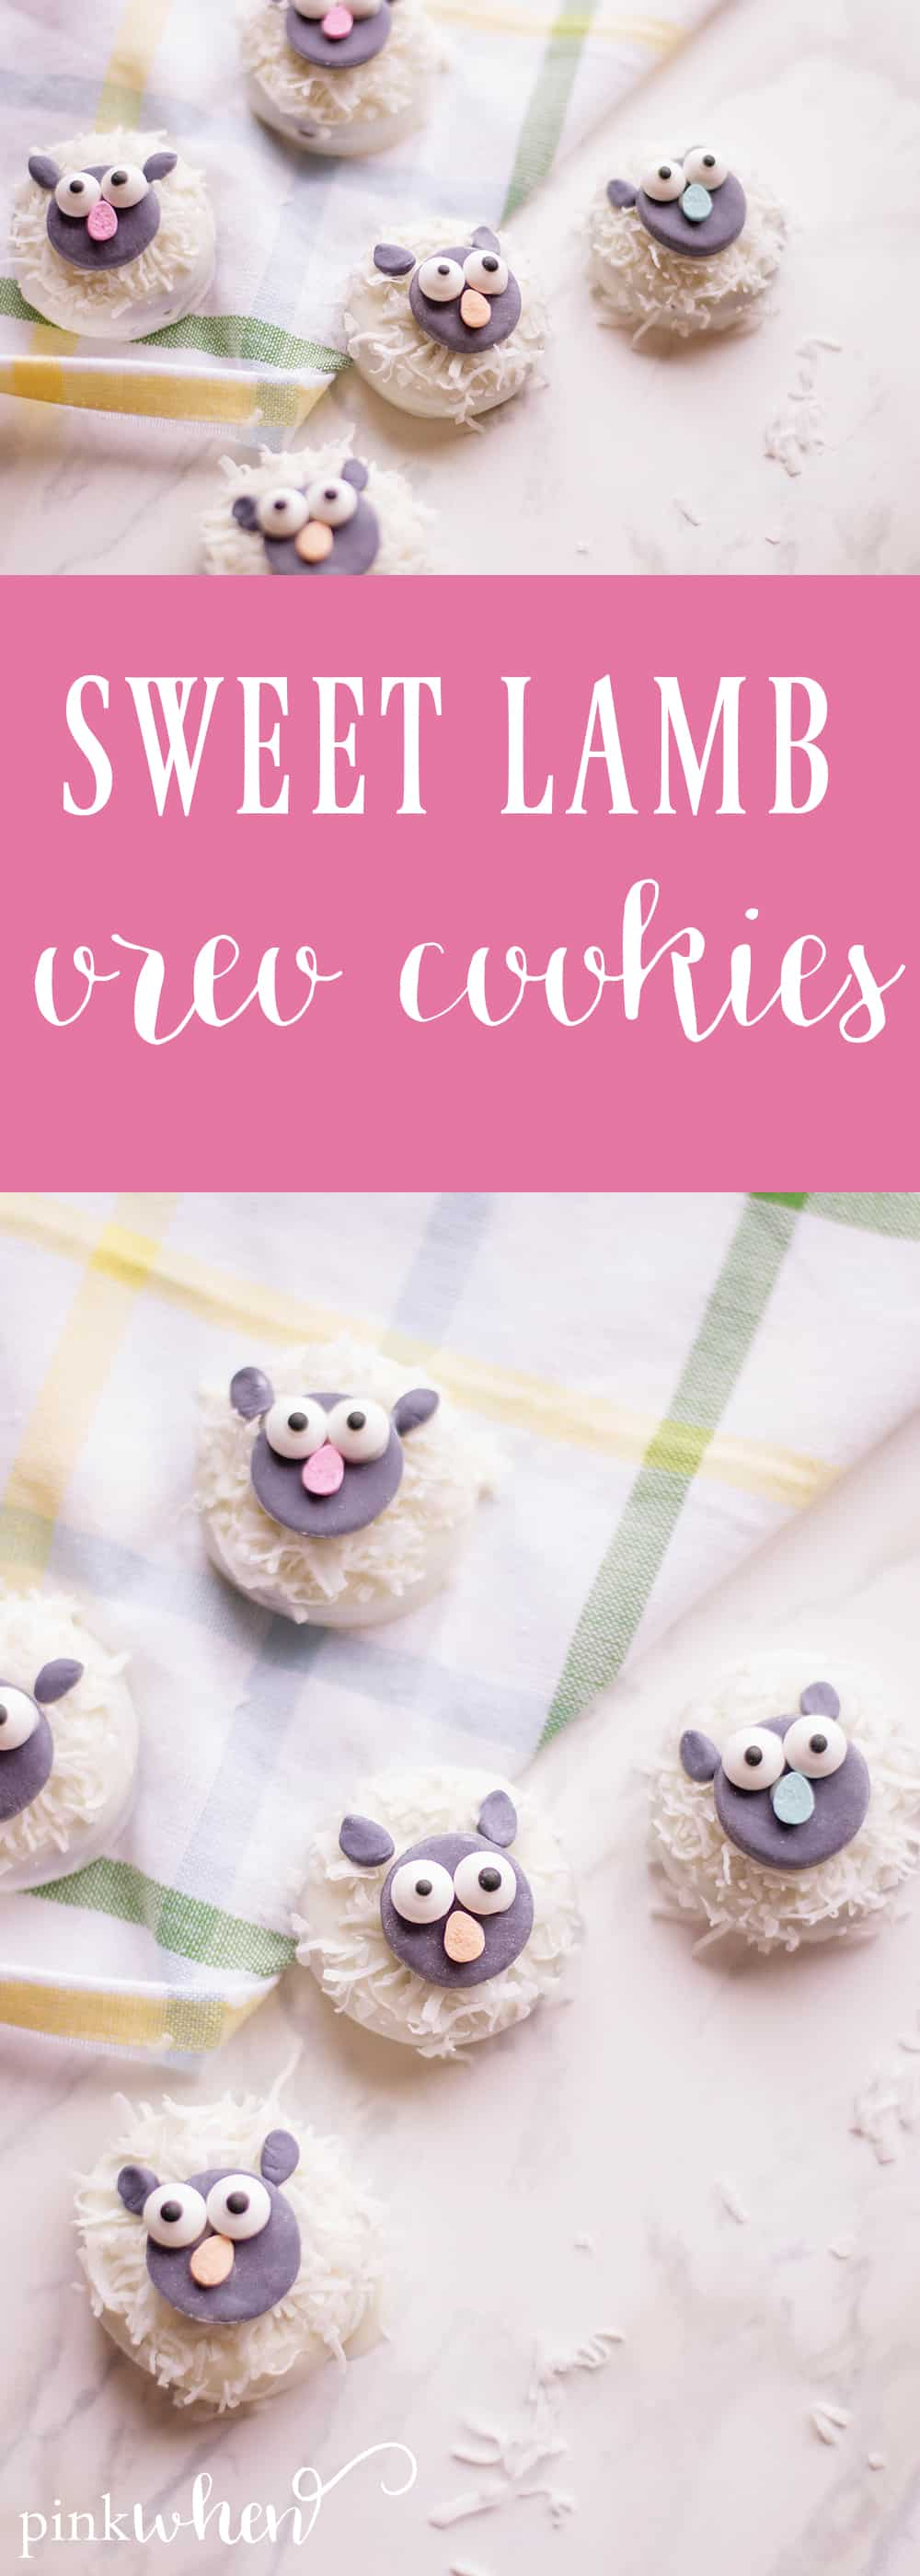 This is a newly loved easy no bake dessert recipe - with a fun twist on OREO cookies that kids will love! These sweet lamb OREO cookies are so sweet, fun, and delicious! These easy no bake OREO cookies will be an absolute hit with the kids!